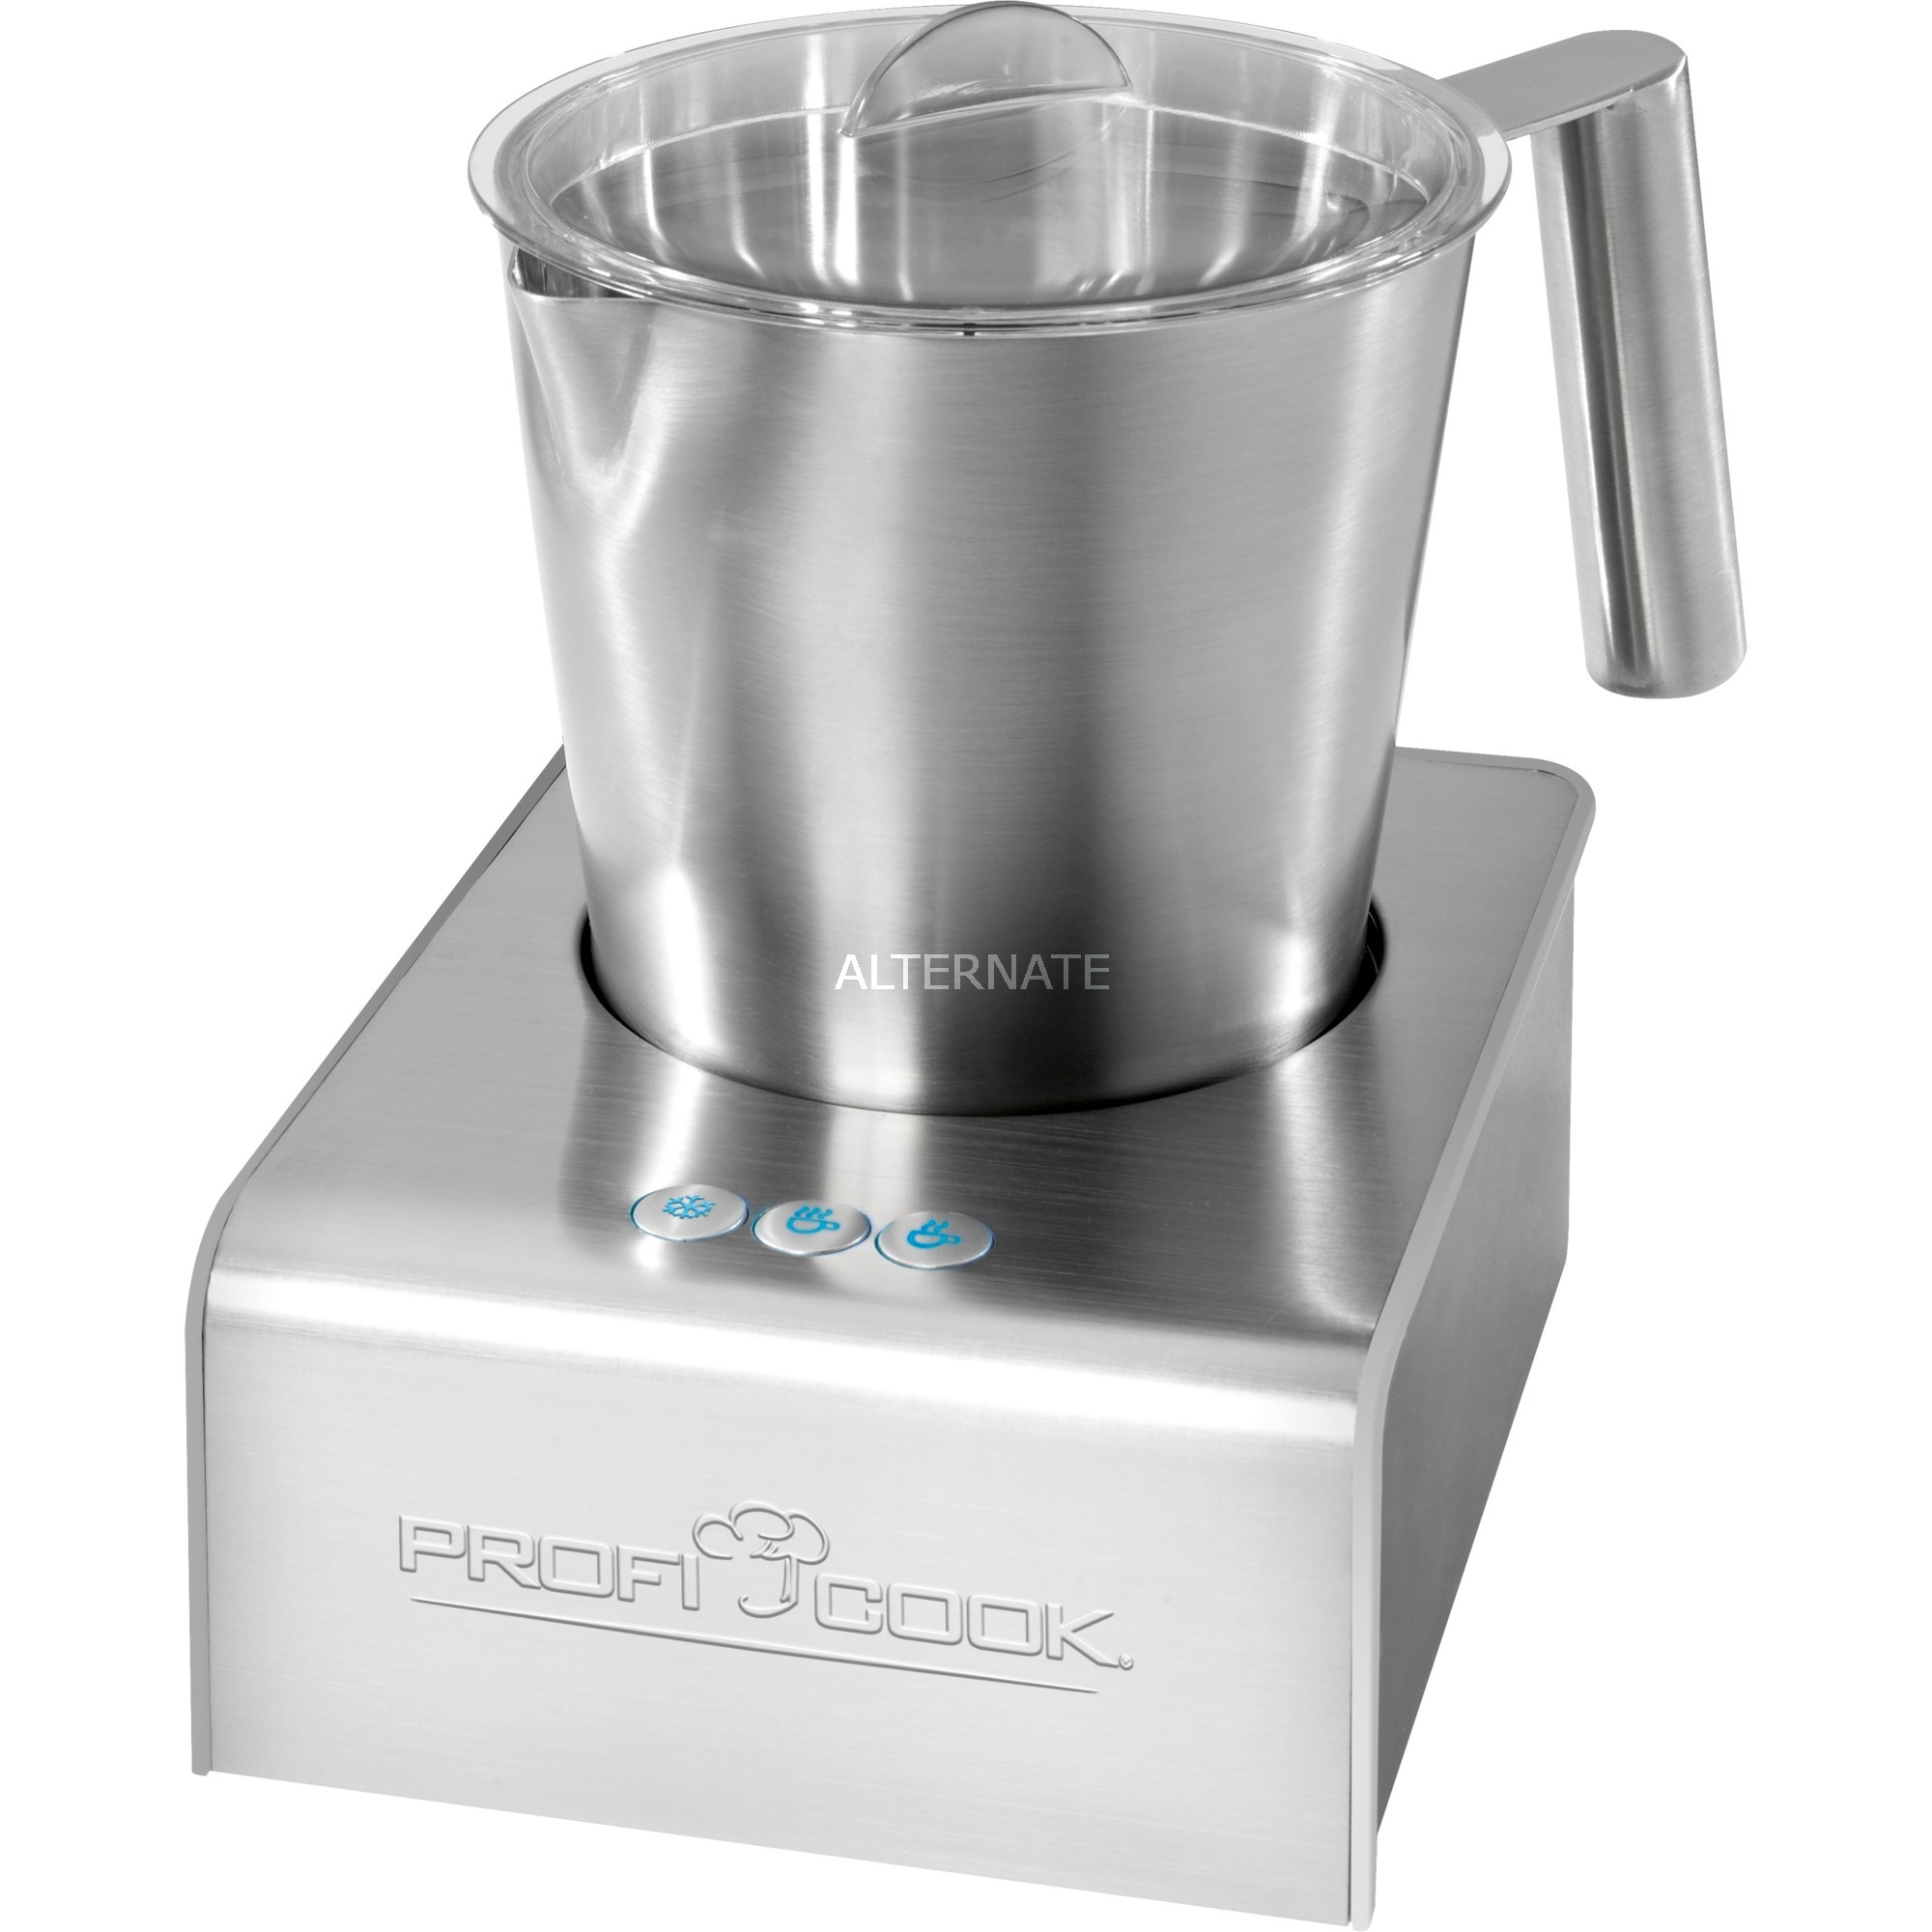 PC-MS 1032 Acero inoxidable, Espumador de leche